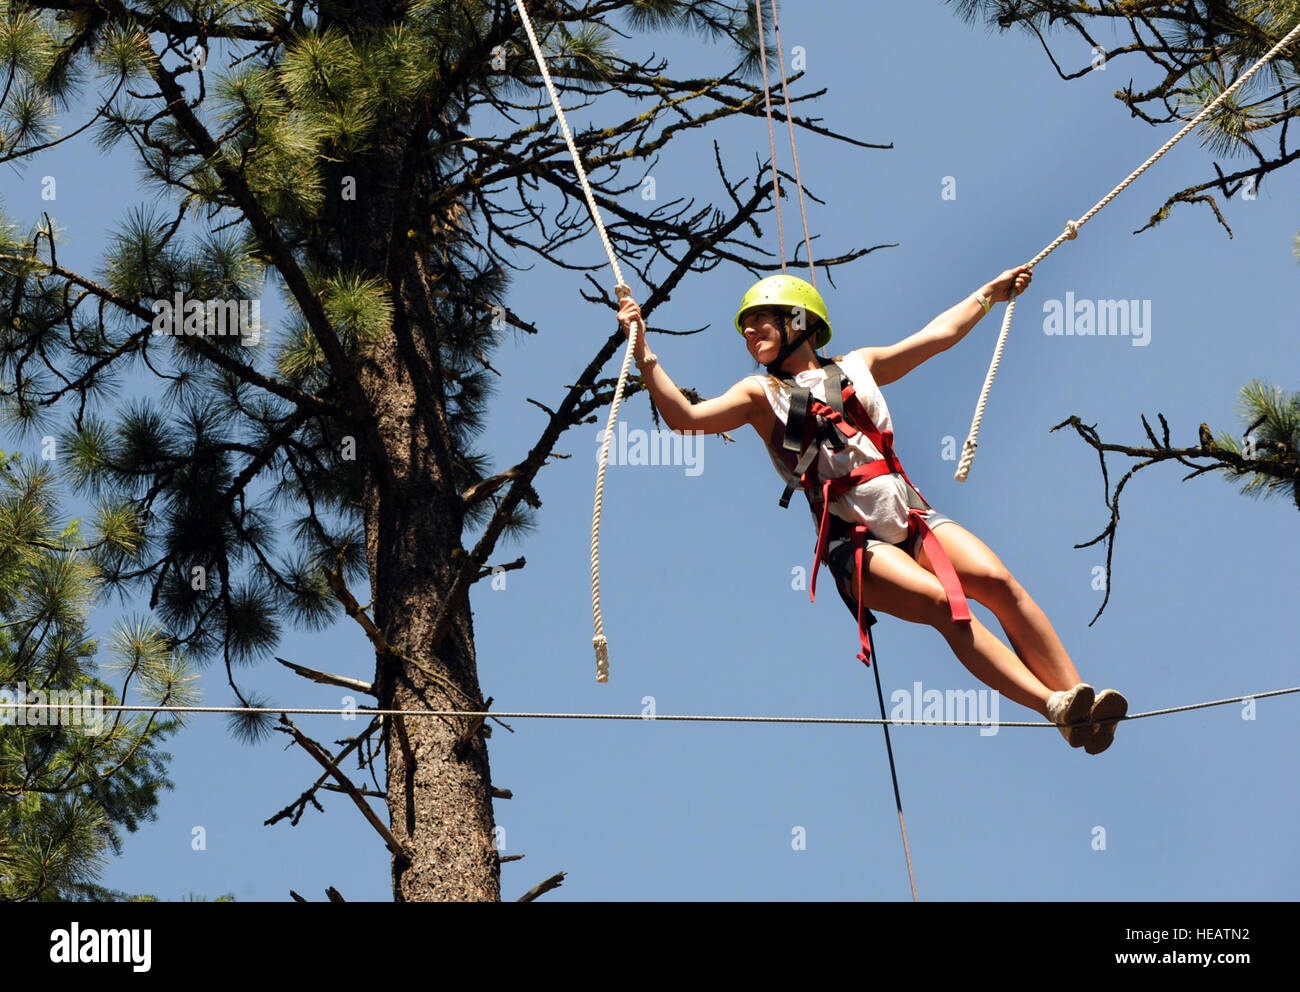 MOUNTAIN HOME AIR FORCE BASE, Idaho -- Allie Bashore, camp participant, makes her way across a high-ropes course - Stock Image